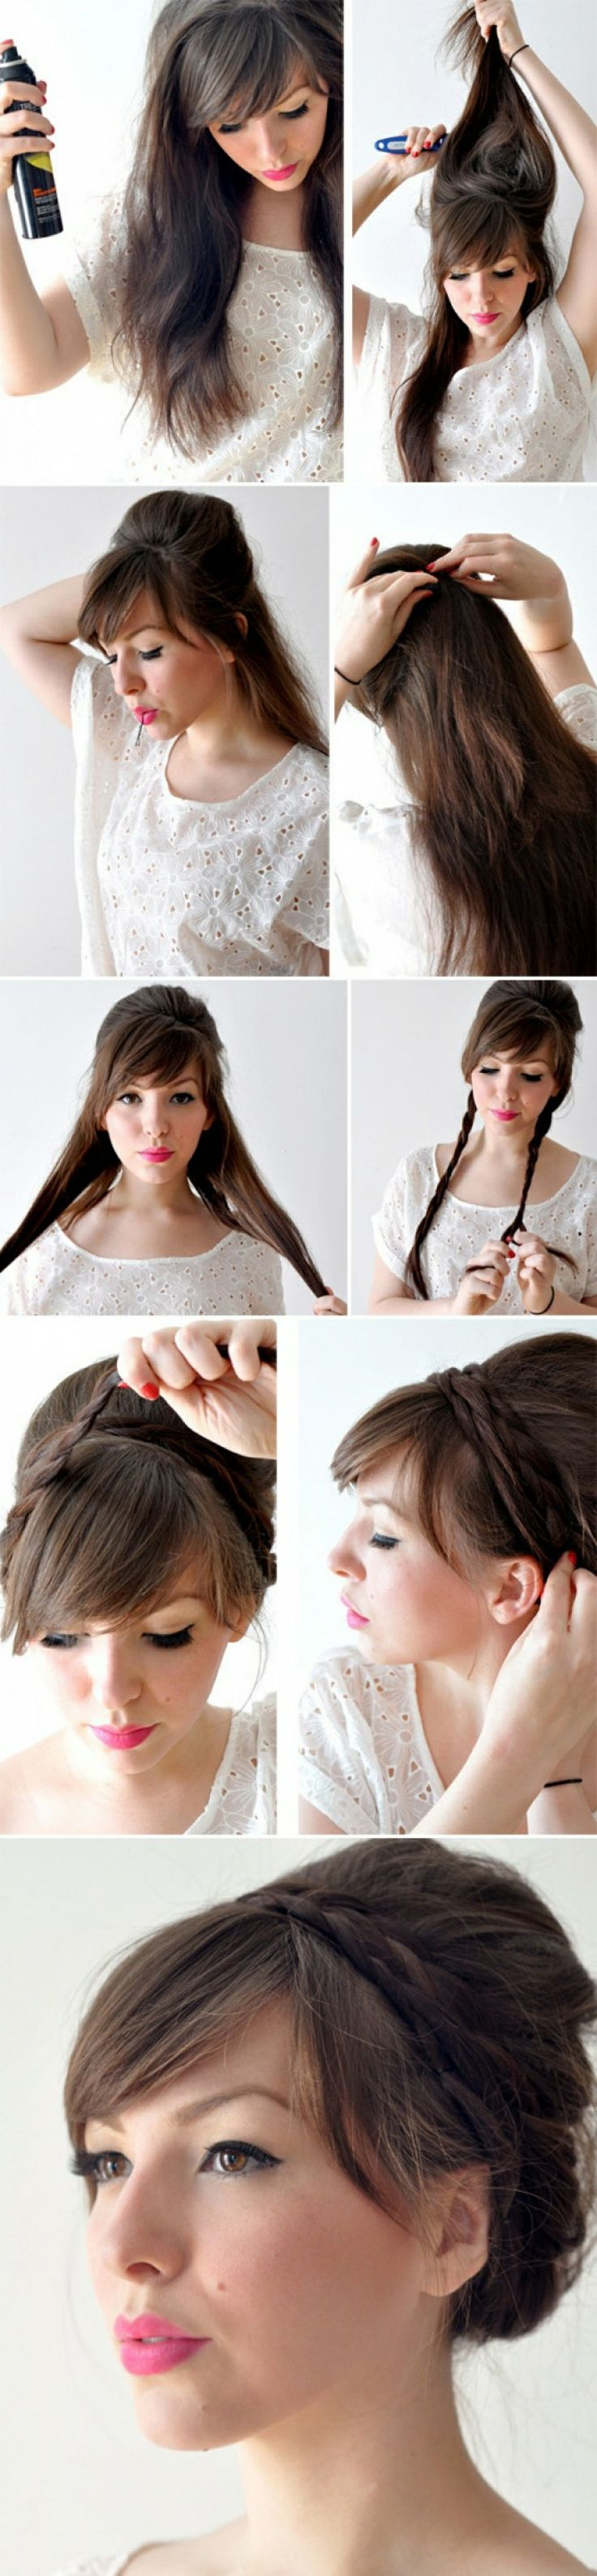 15 Easy DIY Hairstyle Ideas - Always in Trend | Always in Trend